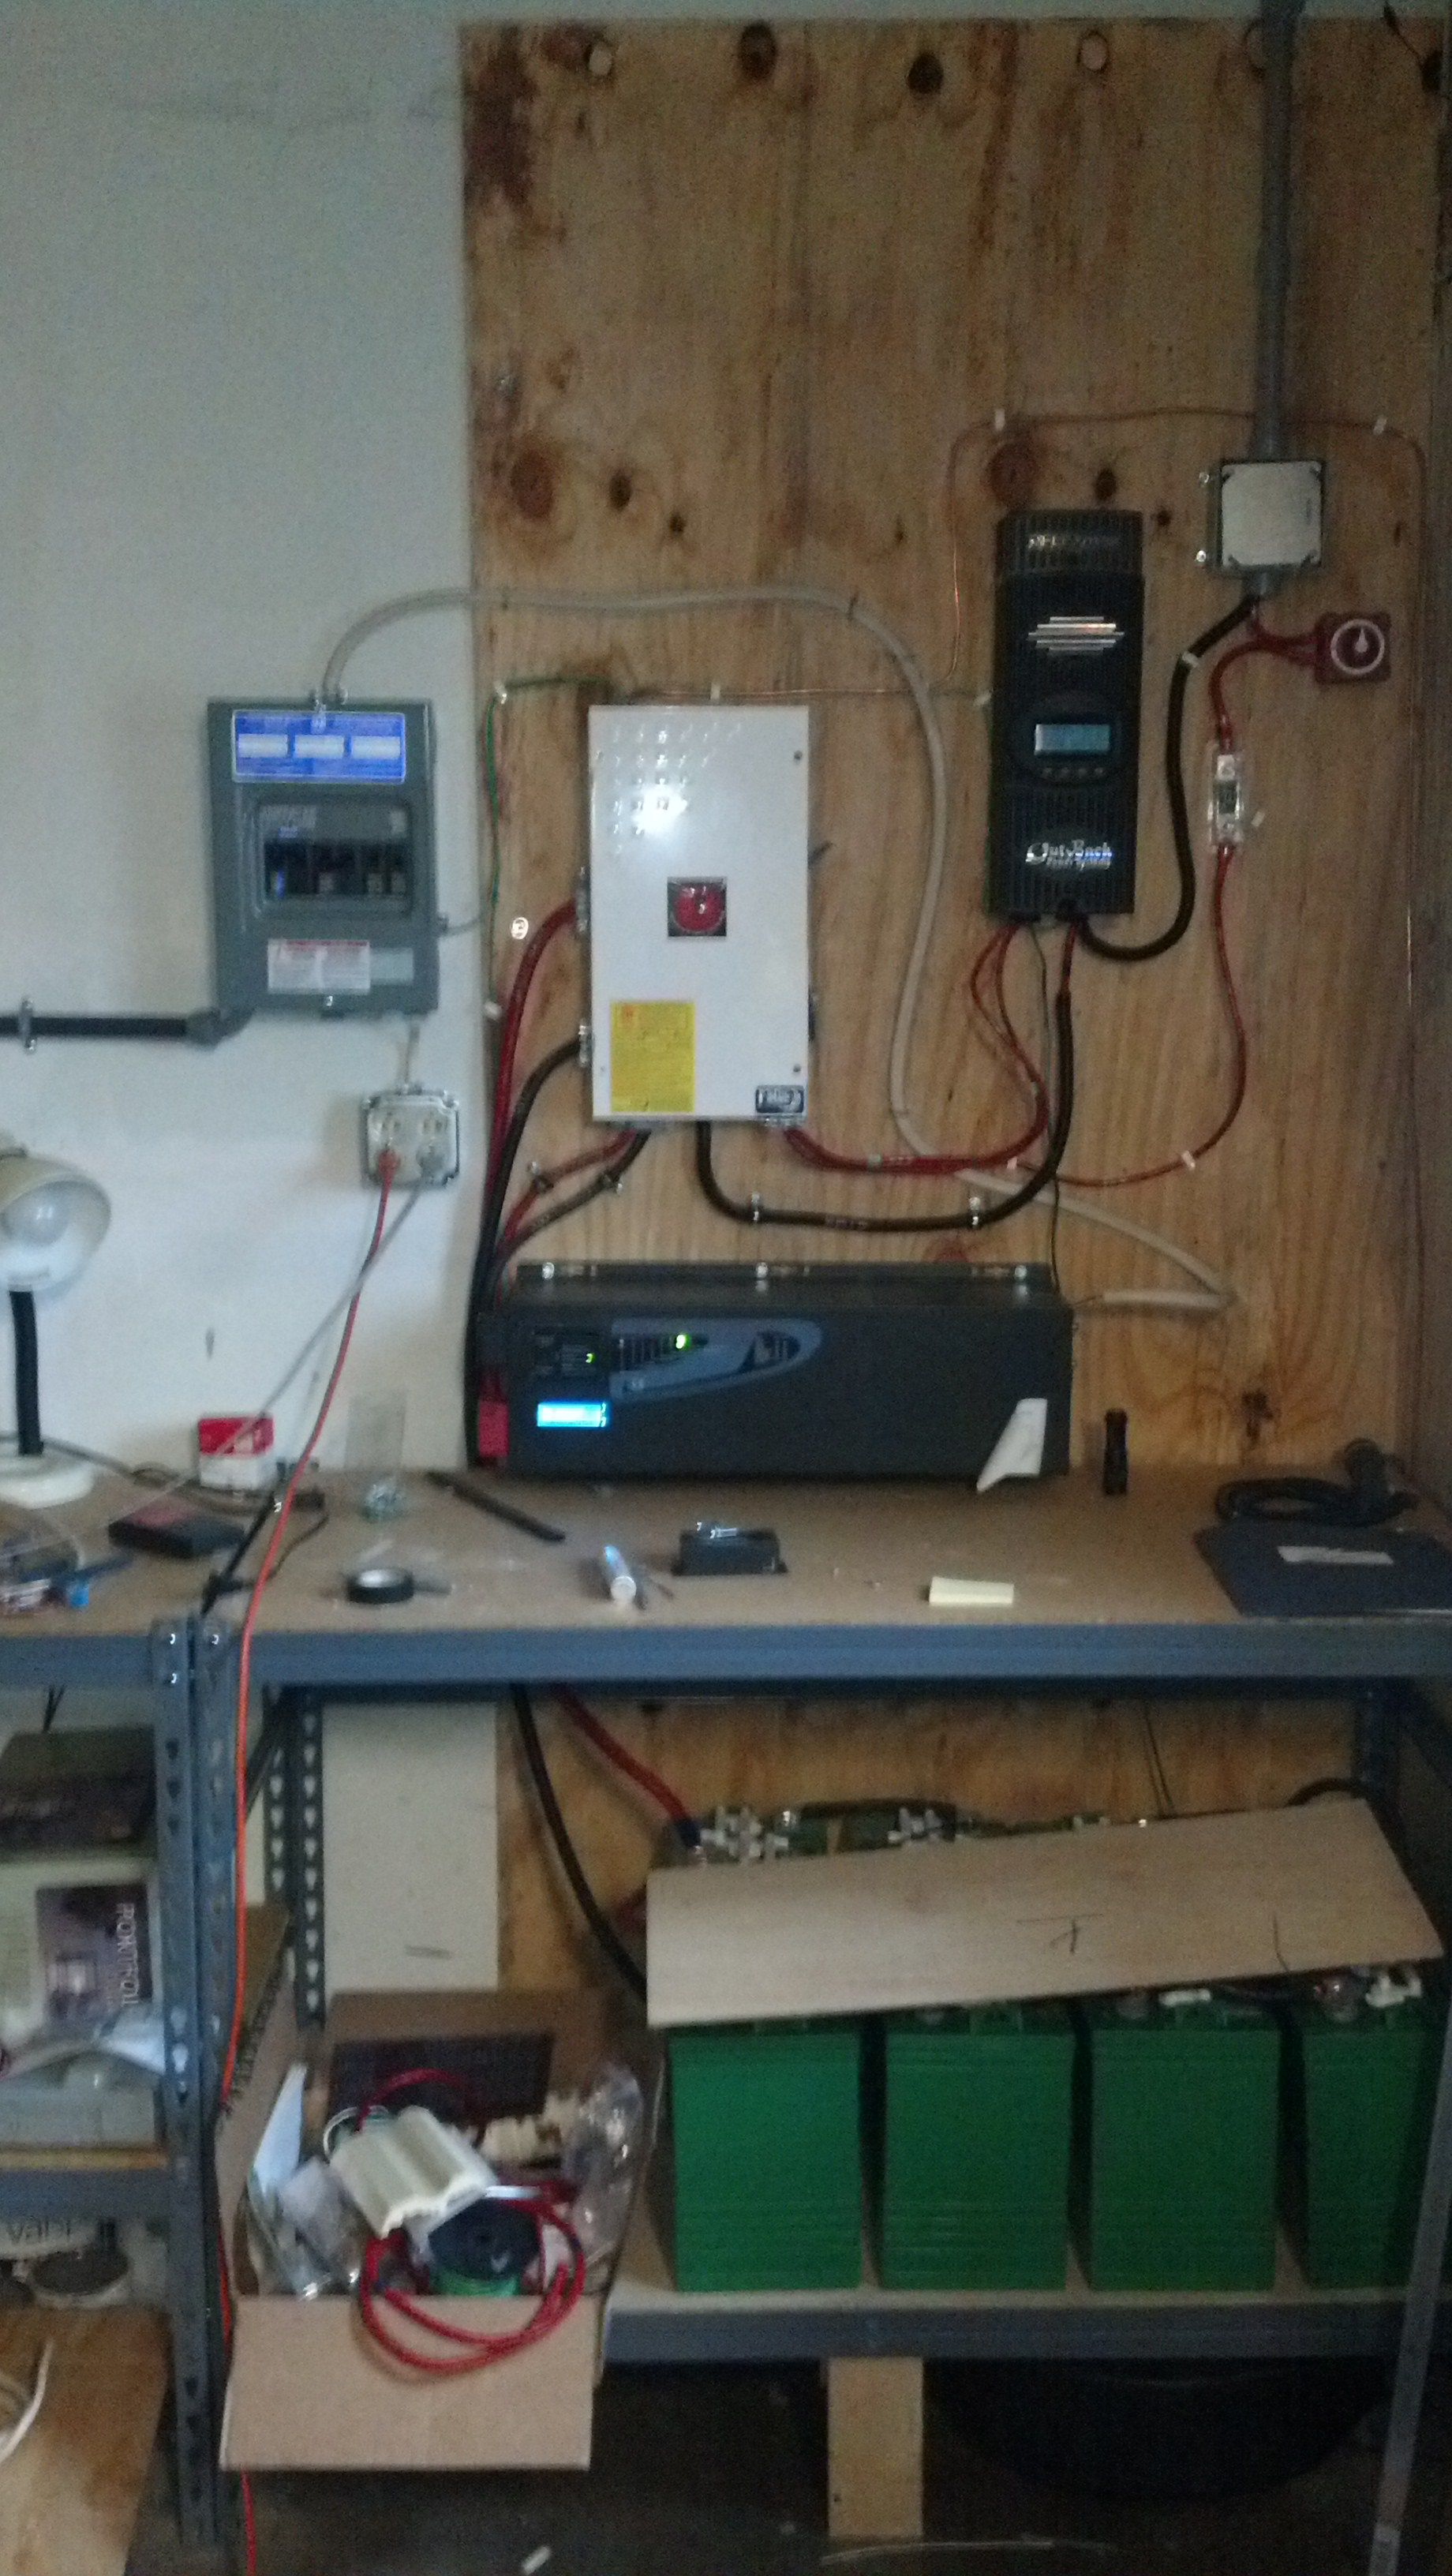 48 volts @ 80 amps in, charge controller steps it down to 24